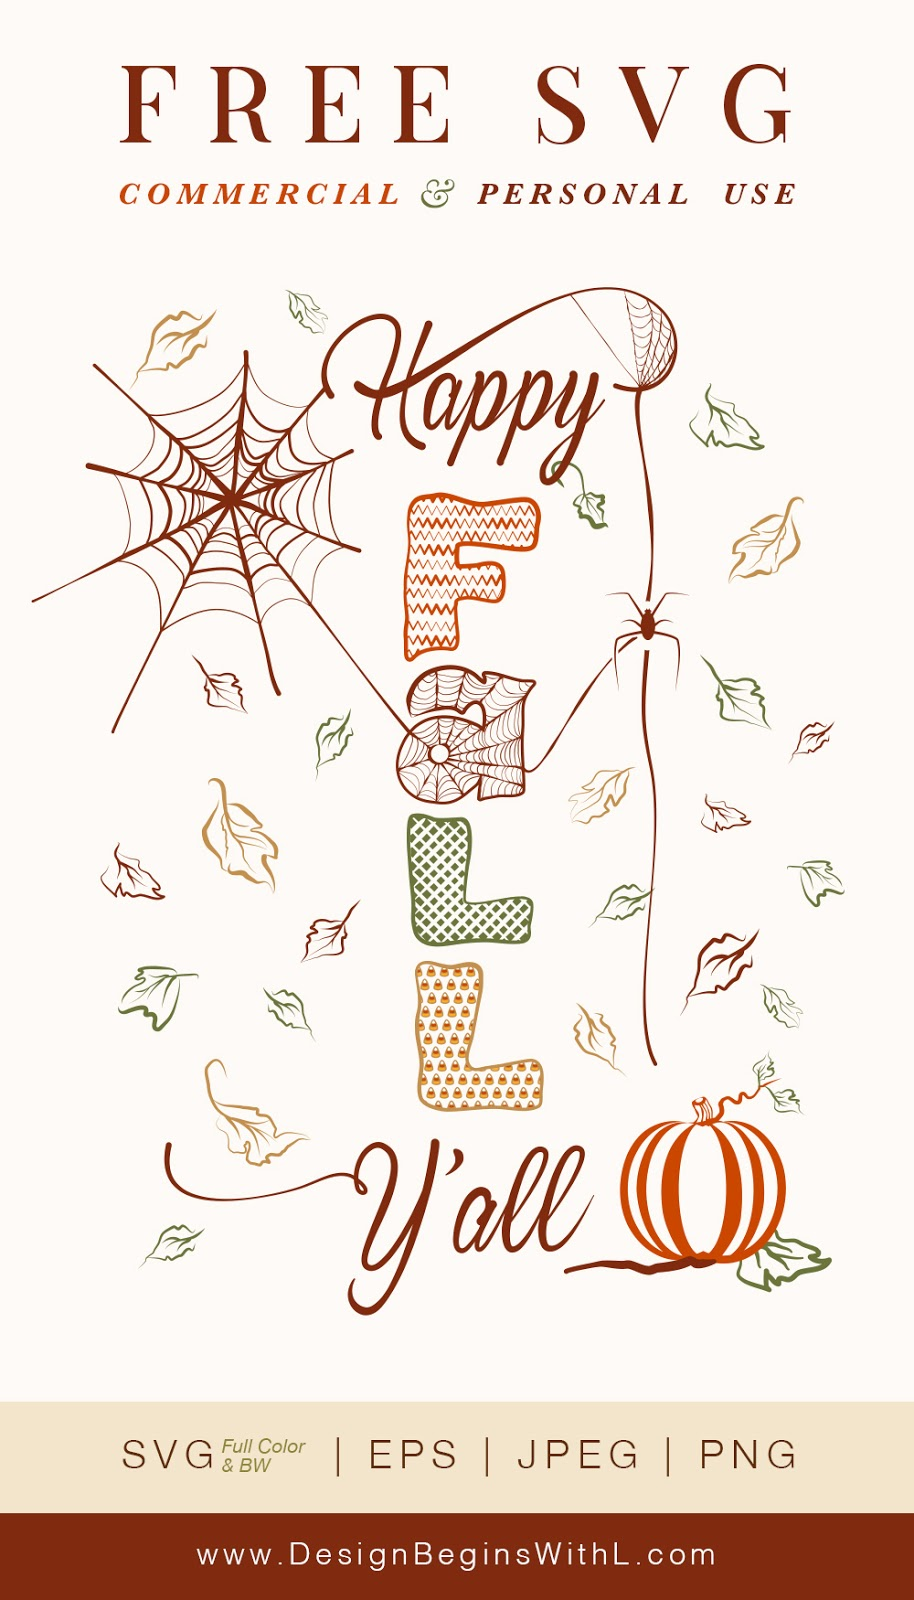 Free Happy Fall Y'all SVG For Commercial Use